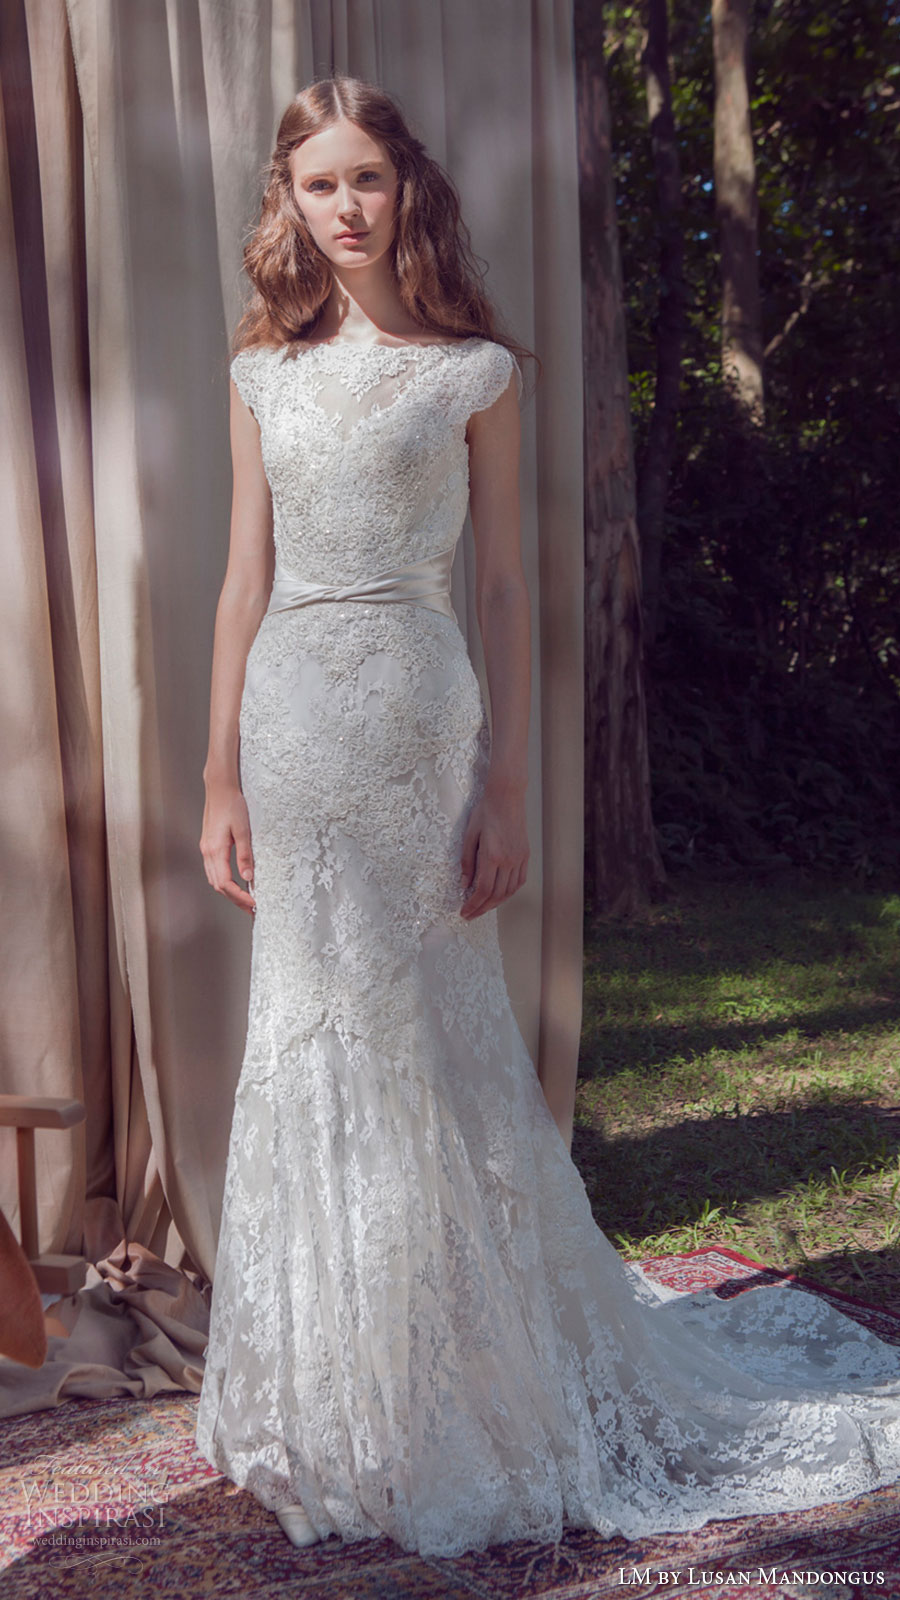 lm lusan mandongus bridal 2017 cap sleeve illusion bateau neck lace sheath wedding dress (lm3256b) mv train